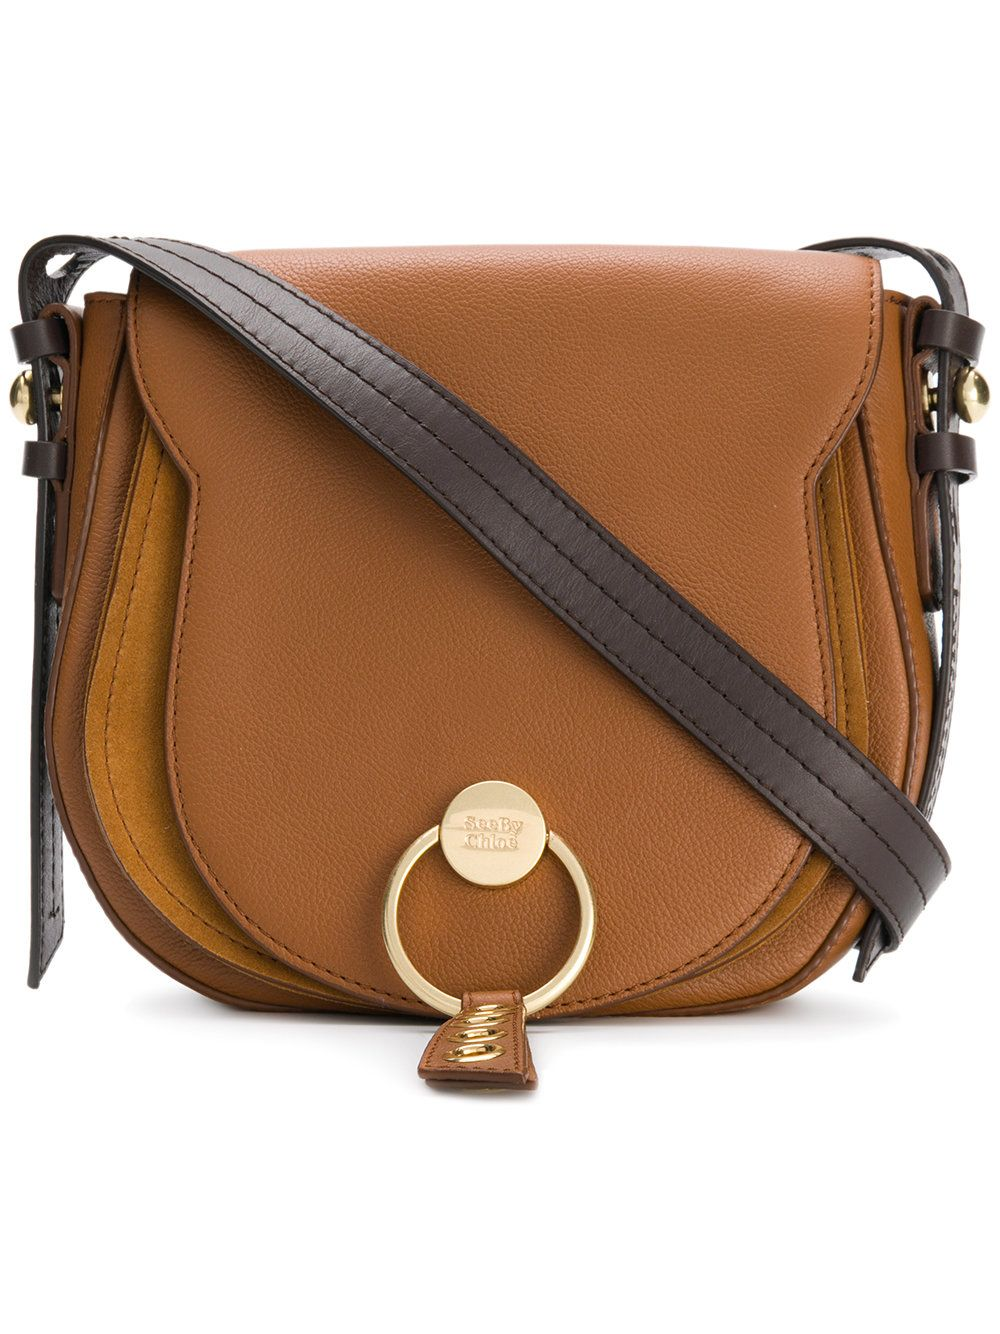 d20d3123 See By Chloé Lumir saddle bag Large Caramello | Bags | See by chloe ...